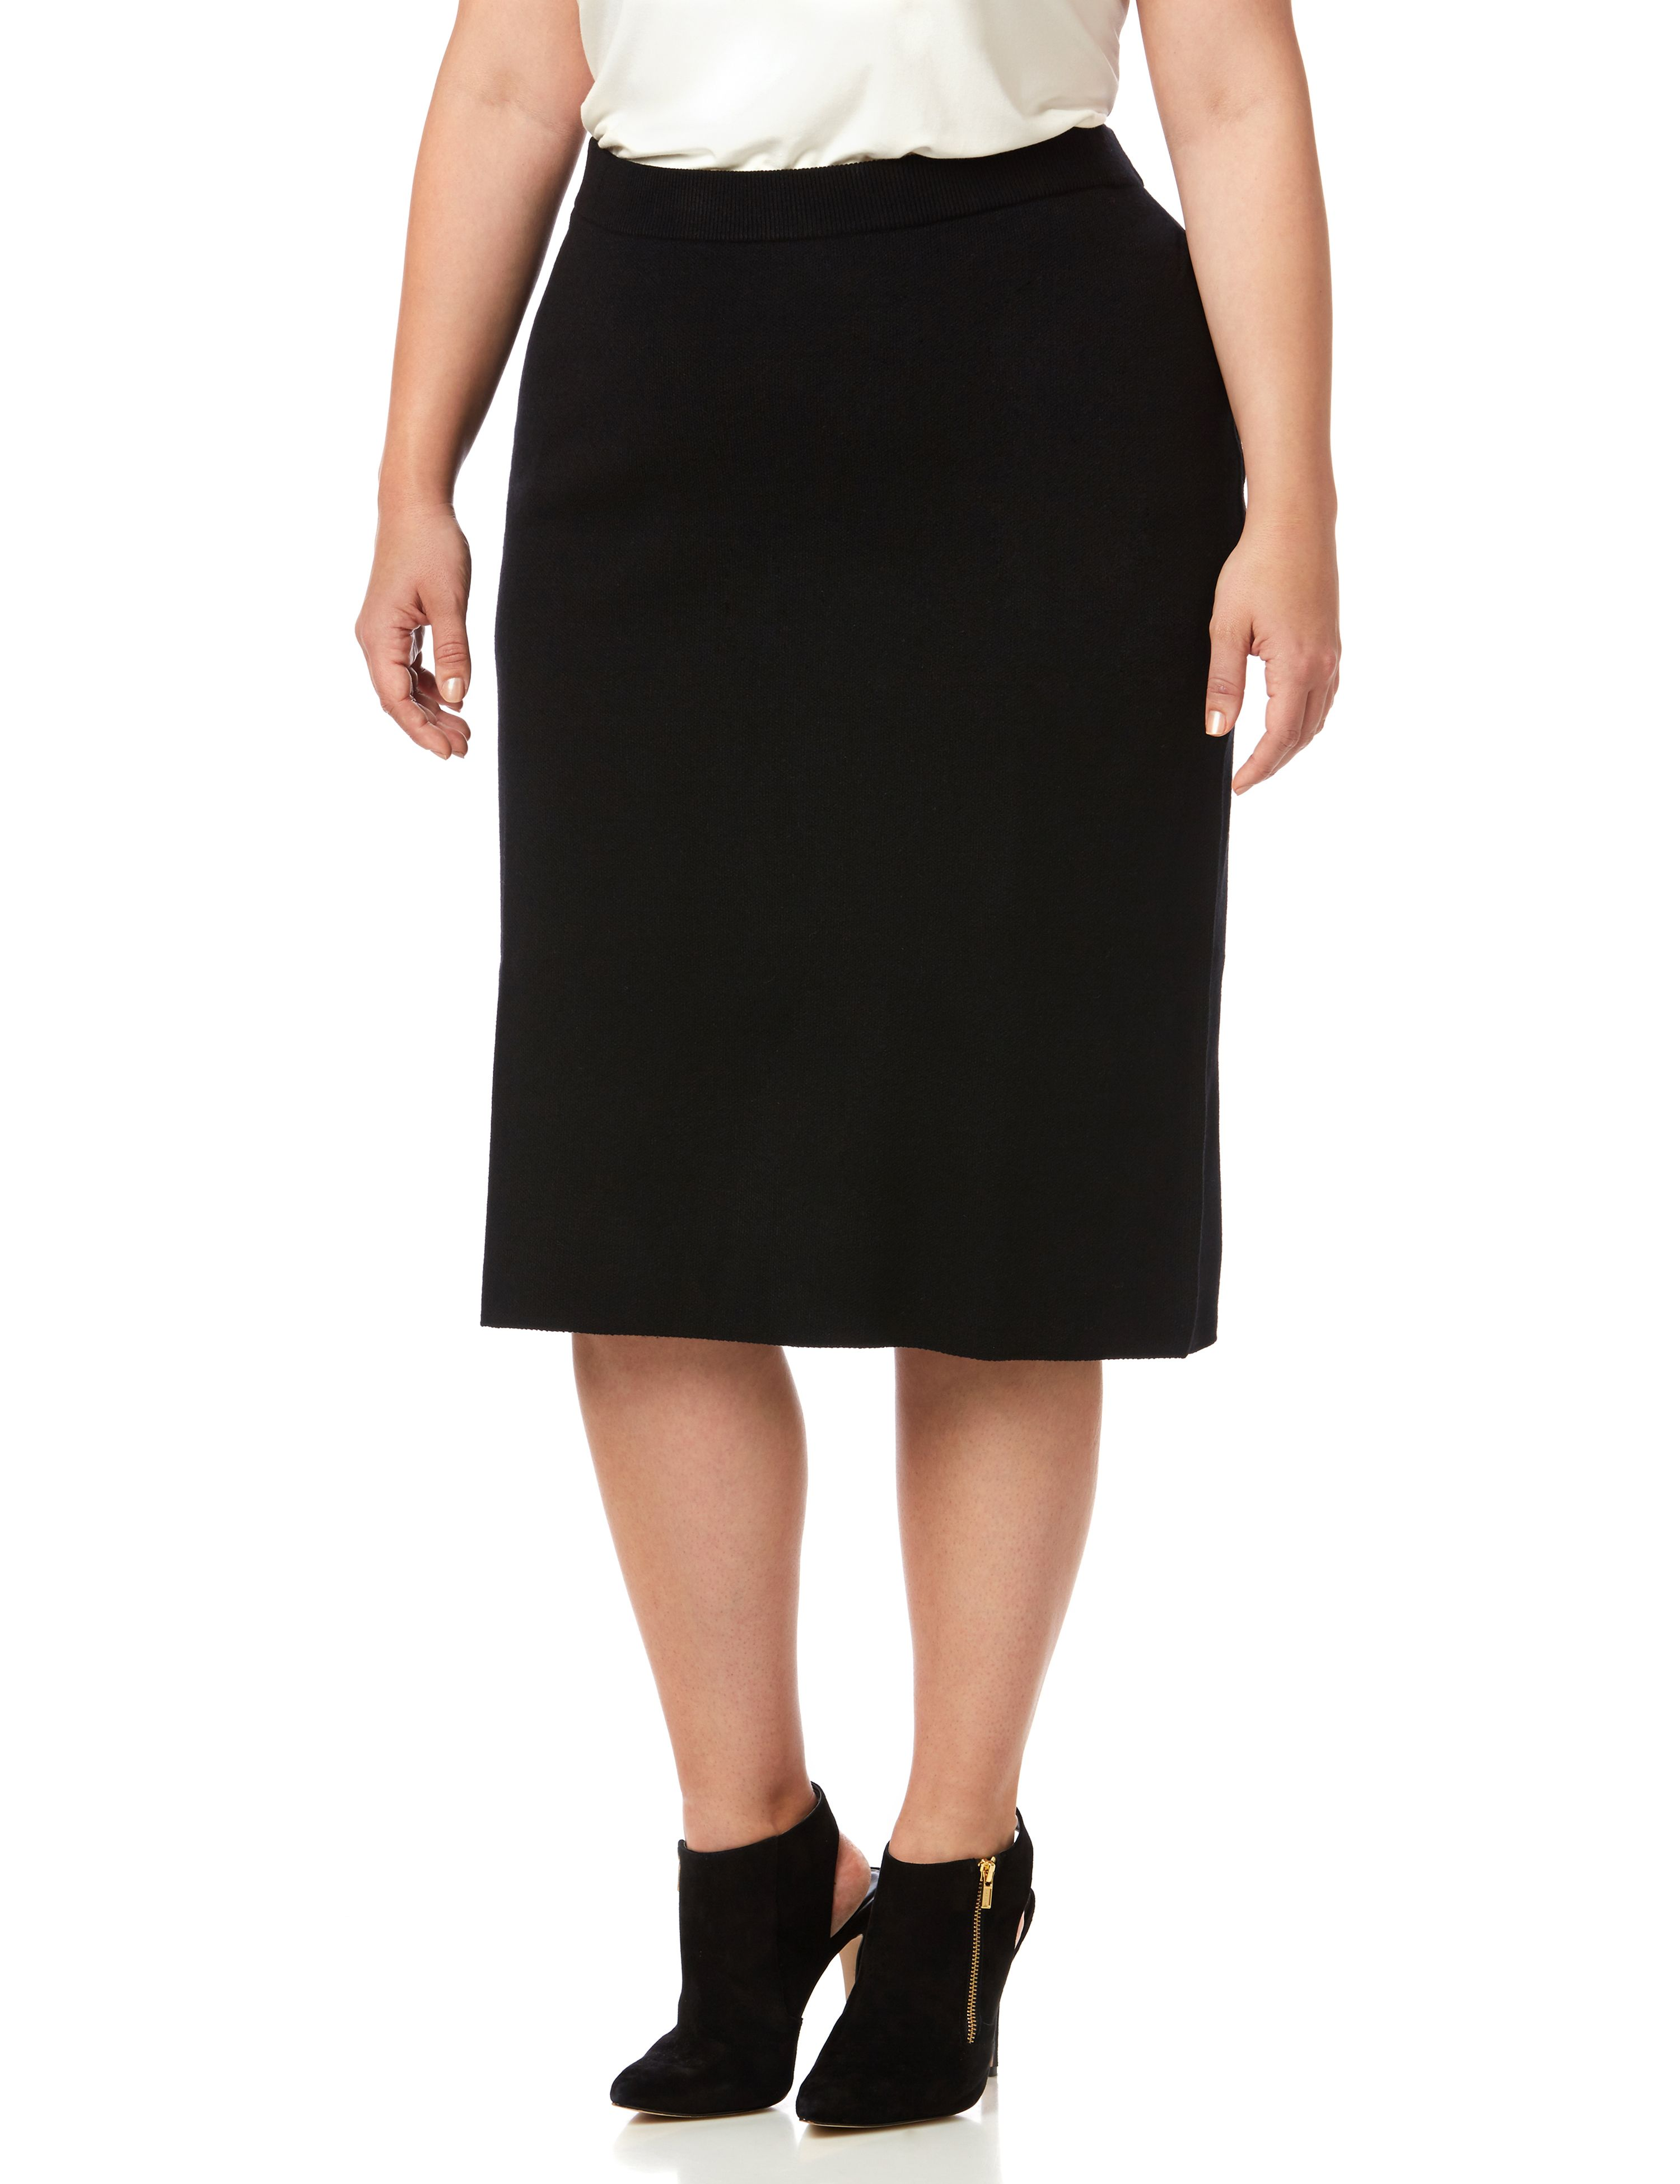 Black Label Sweater Skirt 1087455 Pull on sweater skirt - ATR MP-300091028